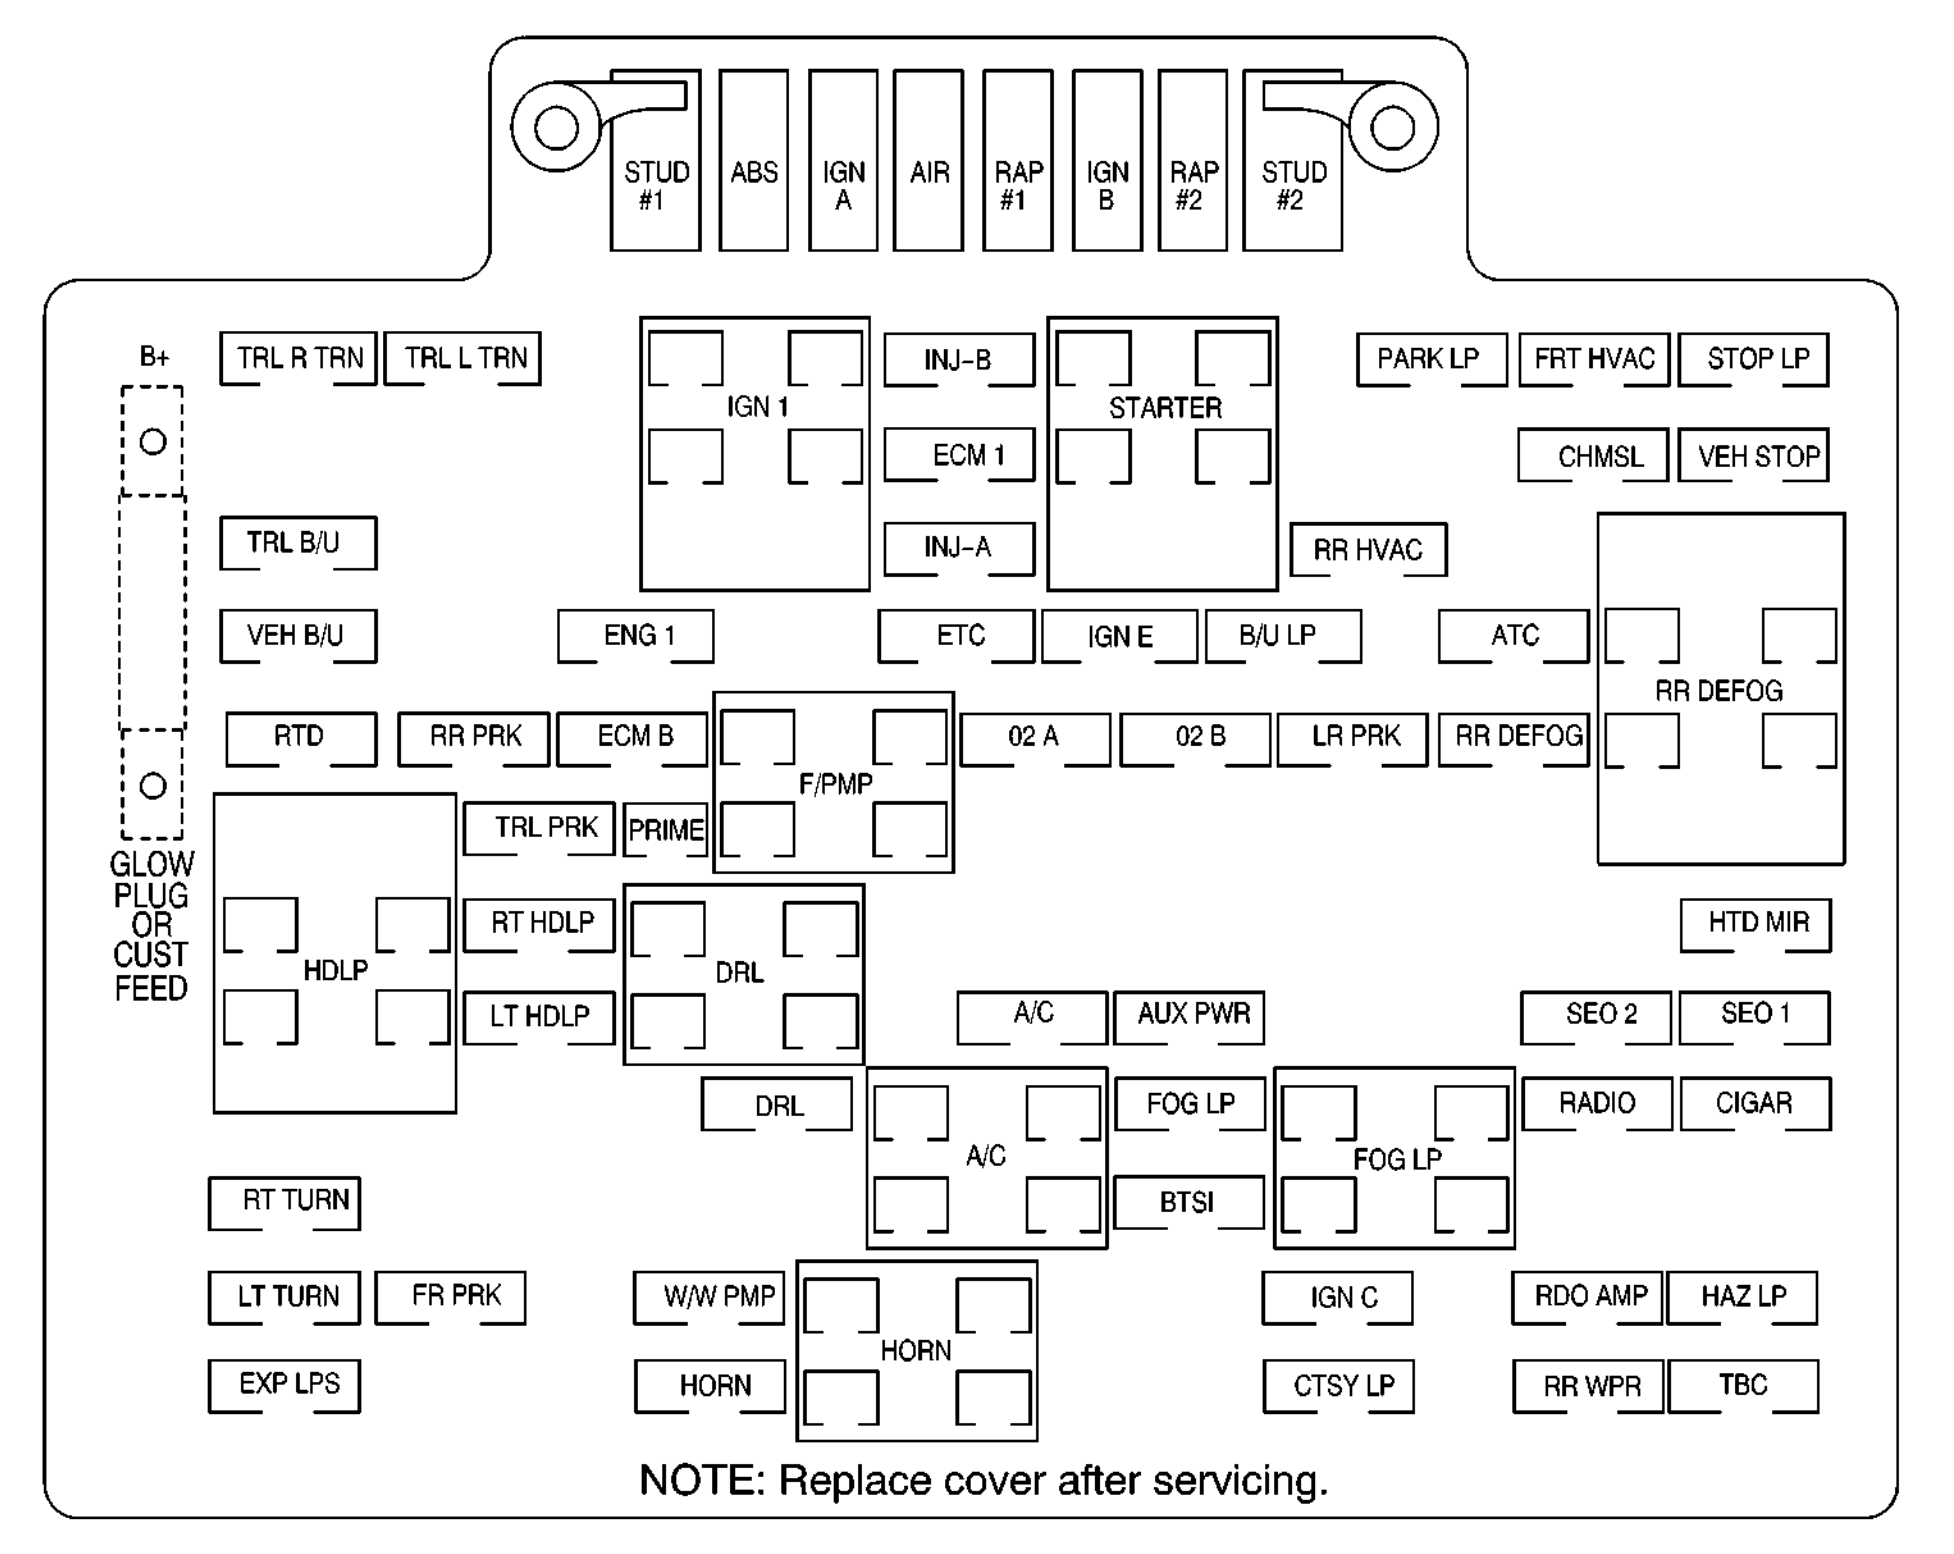 Chevrolet Tahoe Wiring Diagram Fuse Box Underhood Electrical Center